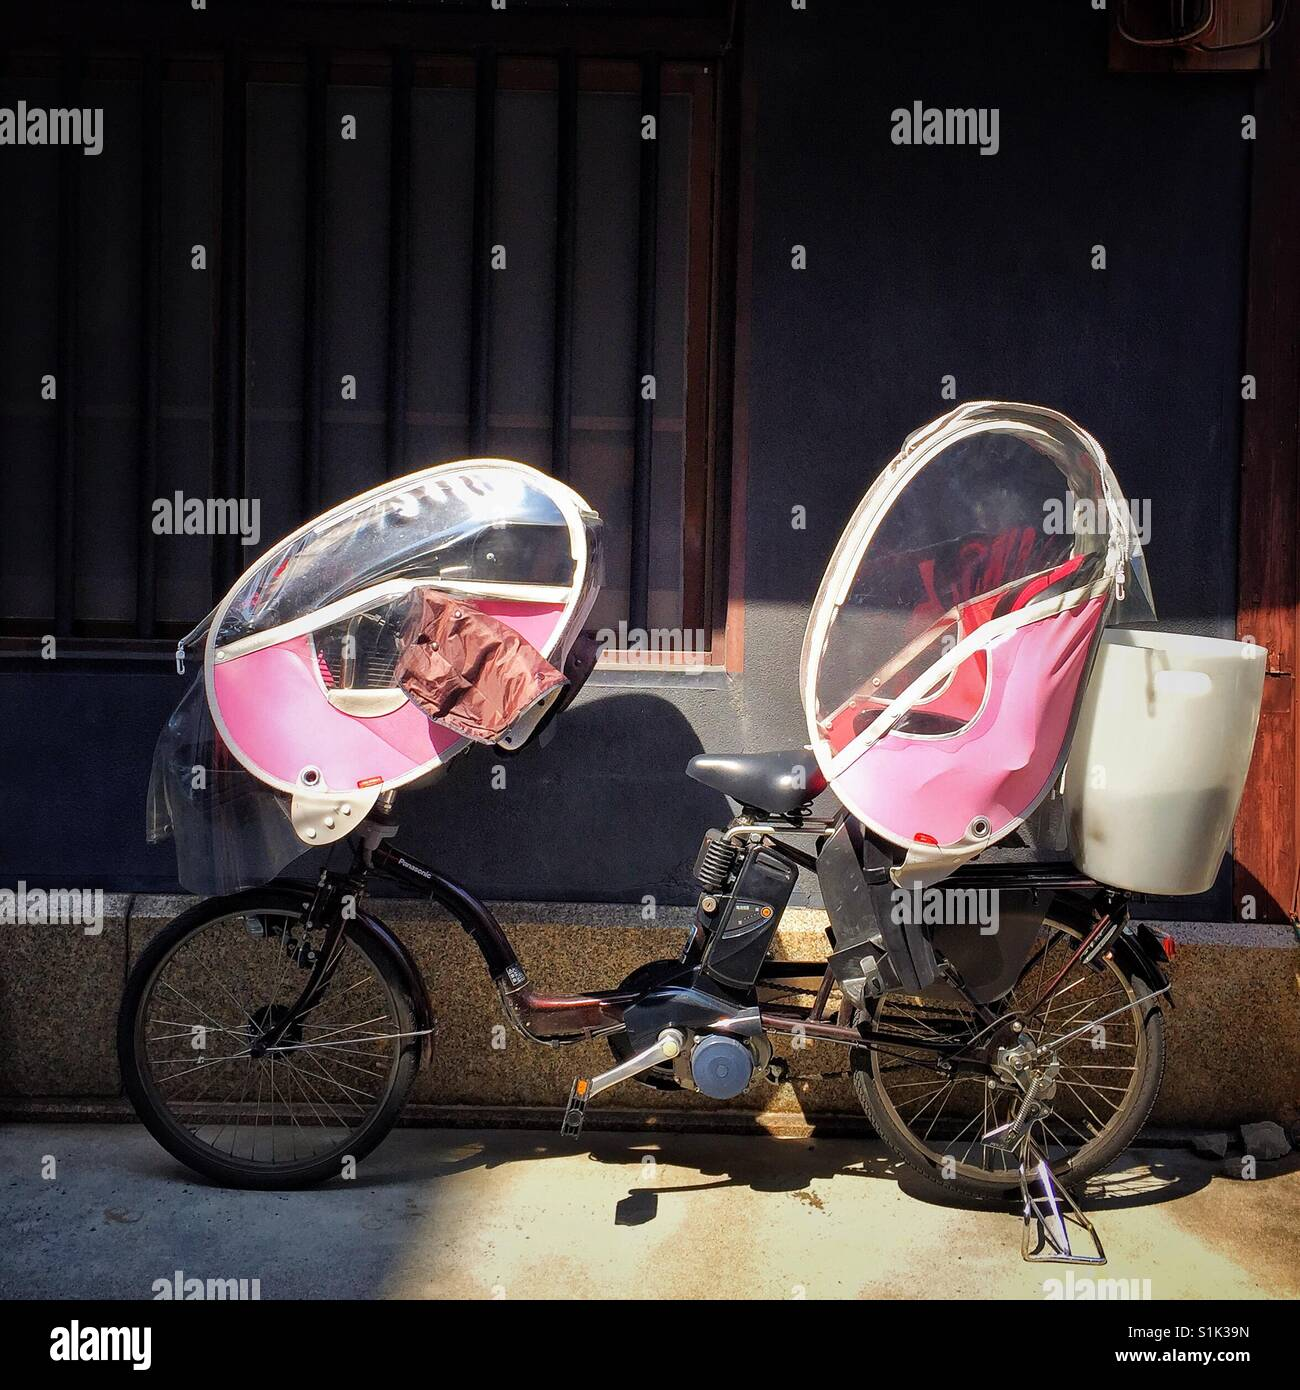 Street bicycle equipped with two pink covered child seats in front and back in residential area of Kyoto - Stock Image